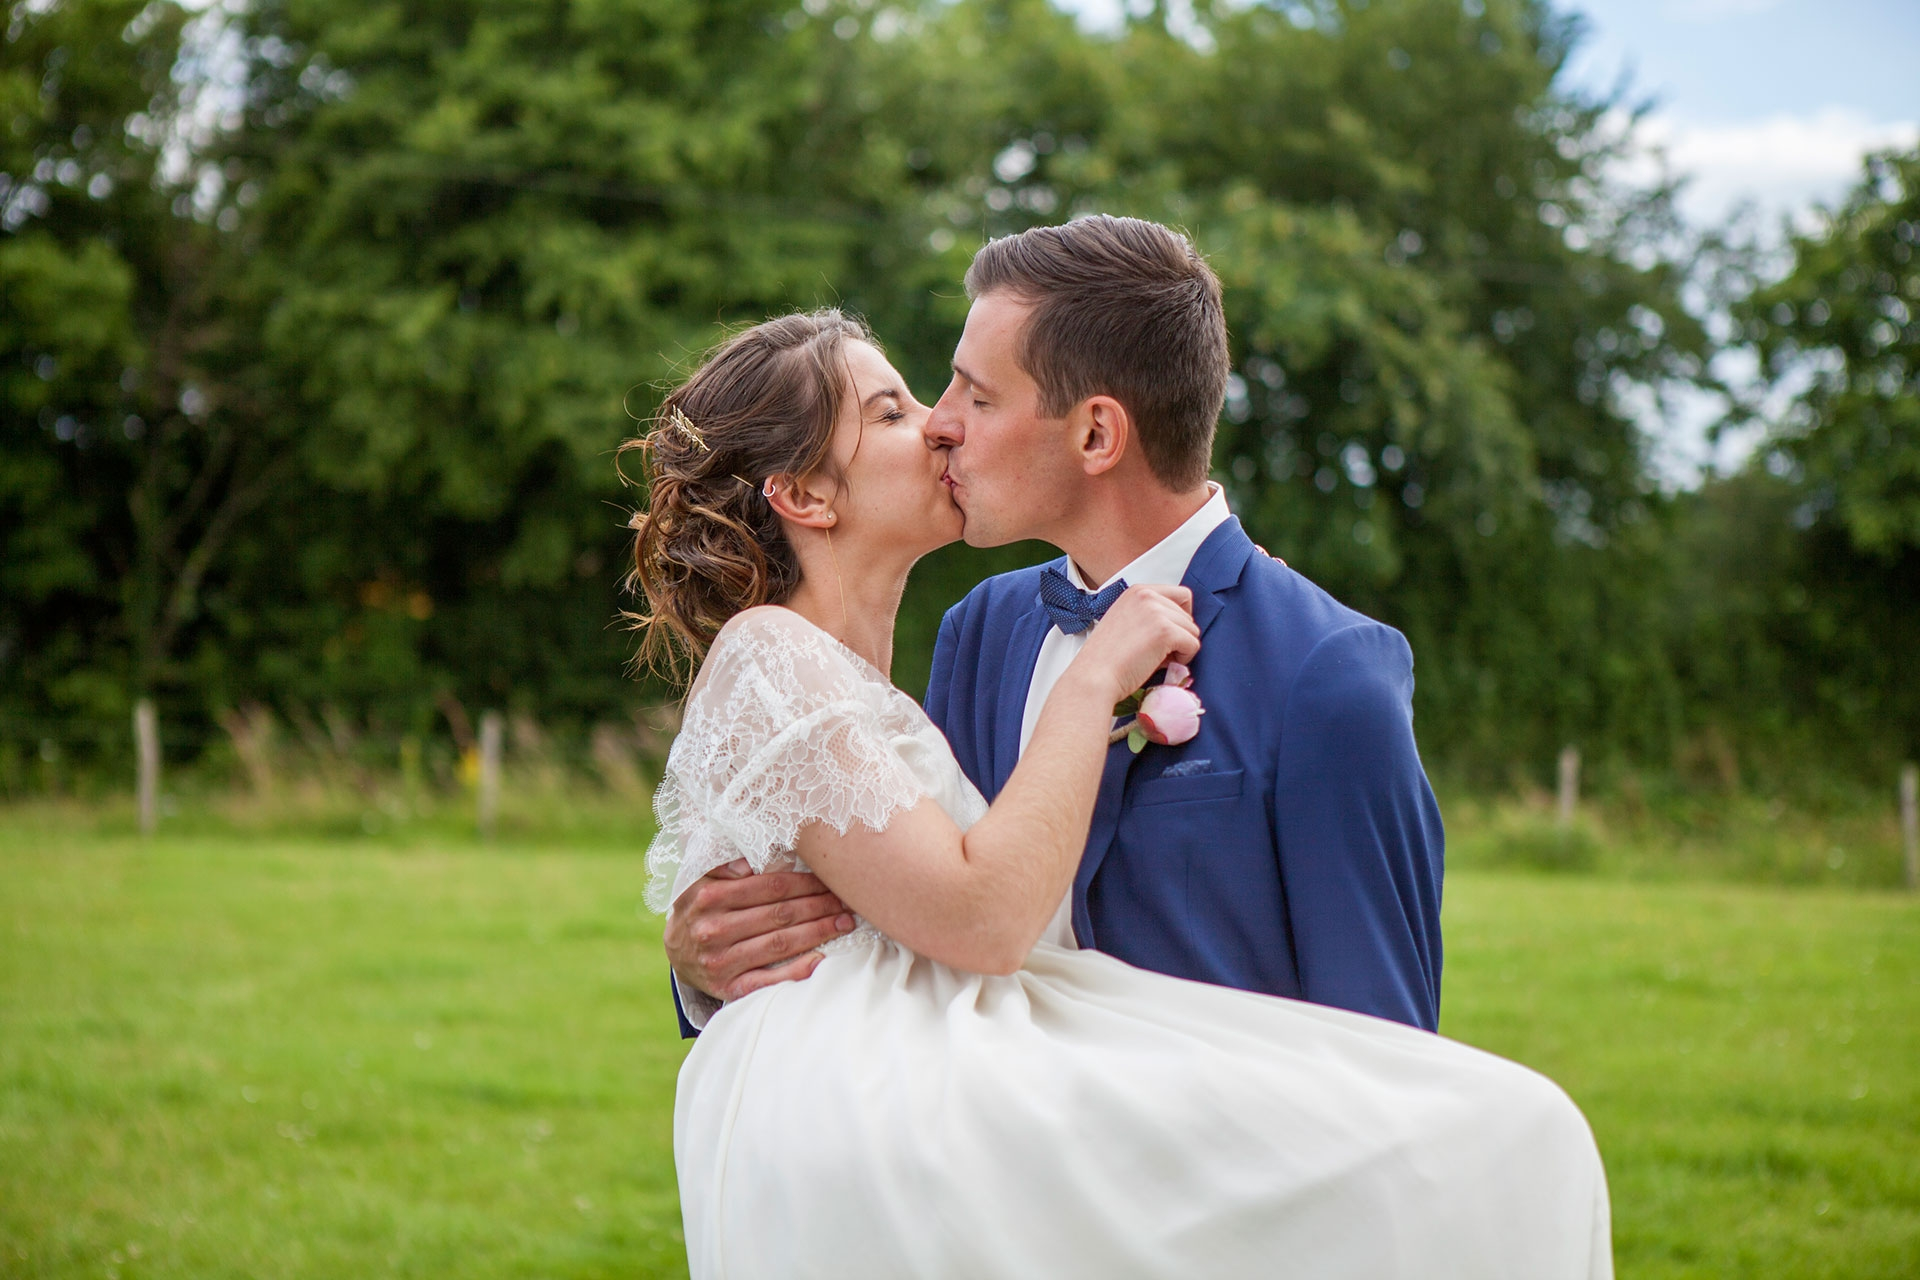 particuliers-evenements-mariages-oui-clementine&alexandre-53